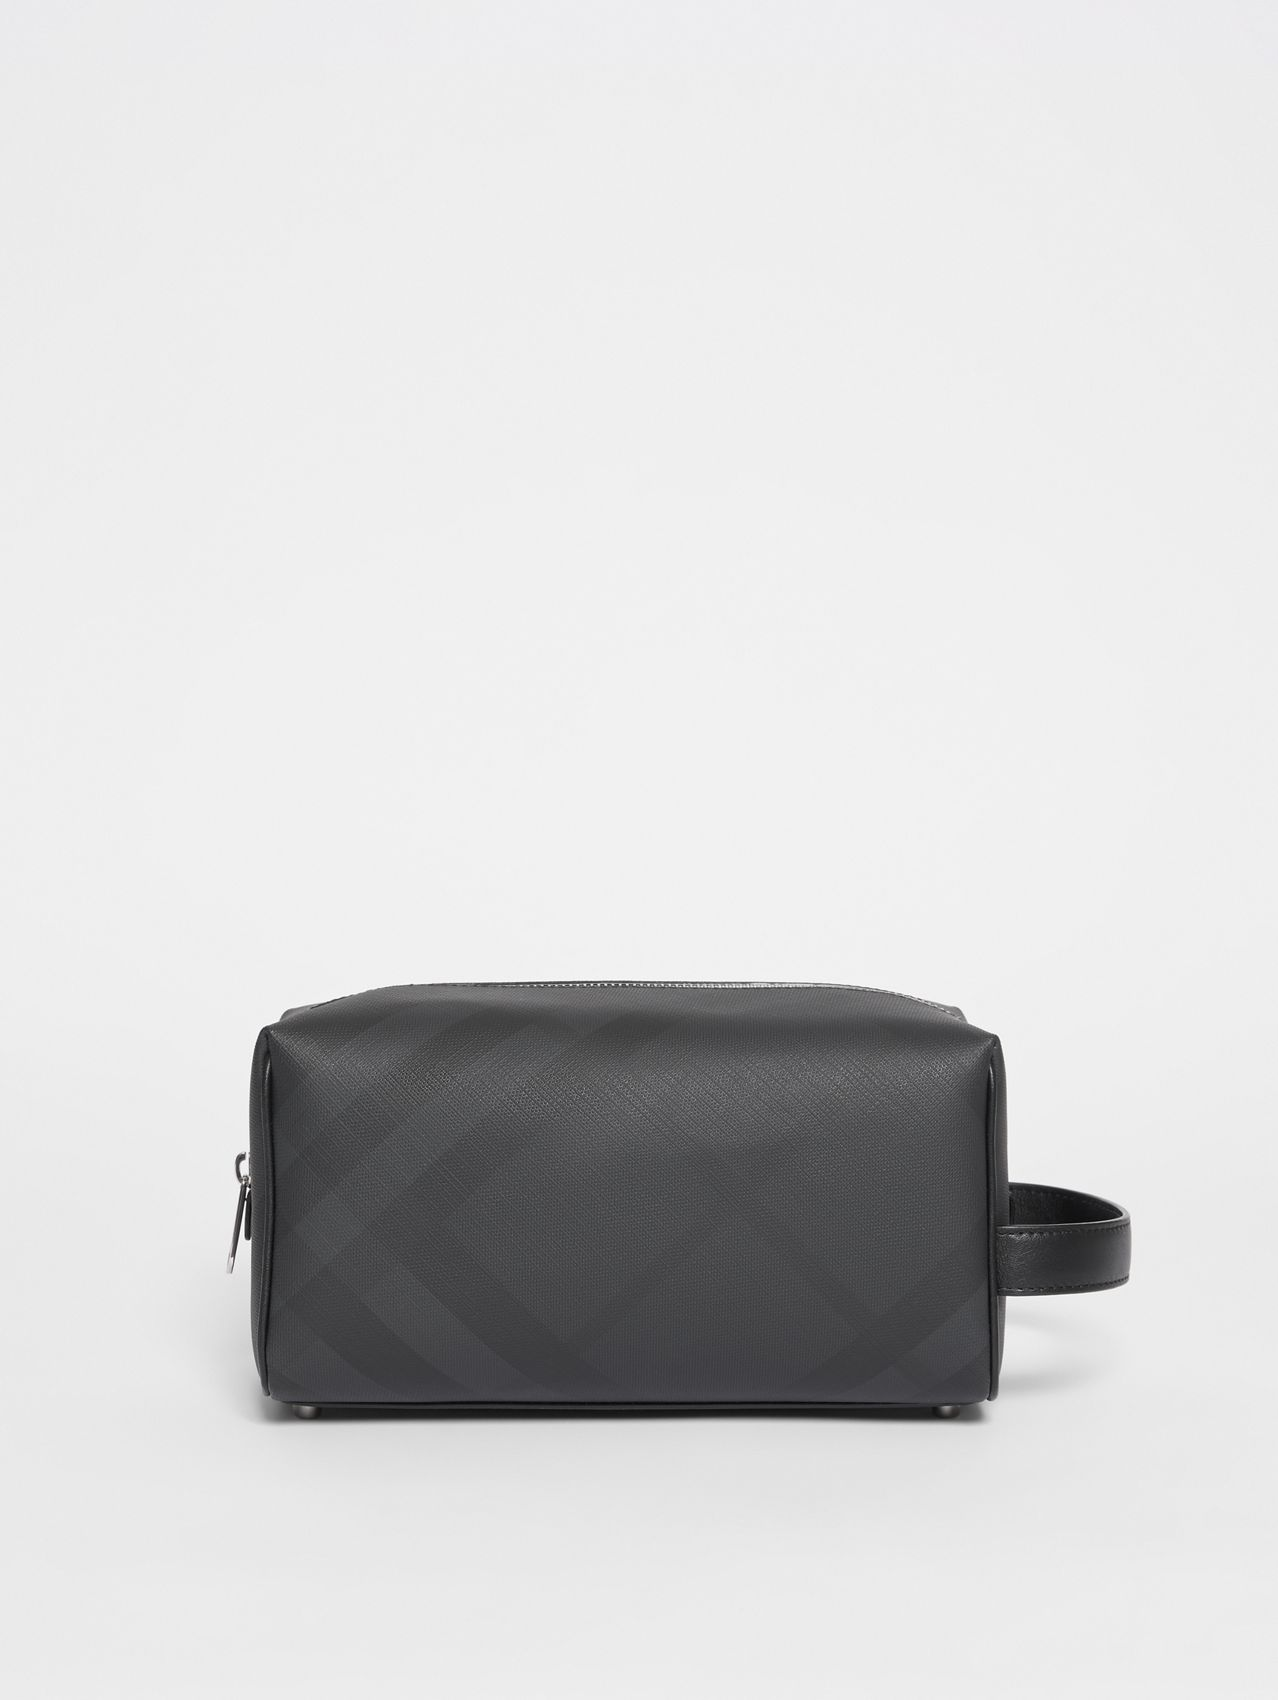 London Check and Leather Travel Pouch in Dark Charcoal